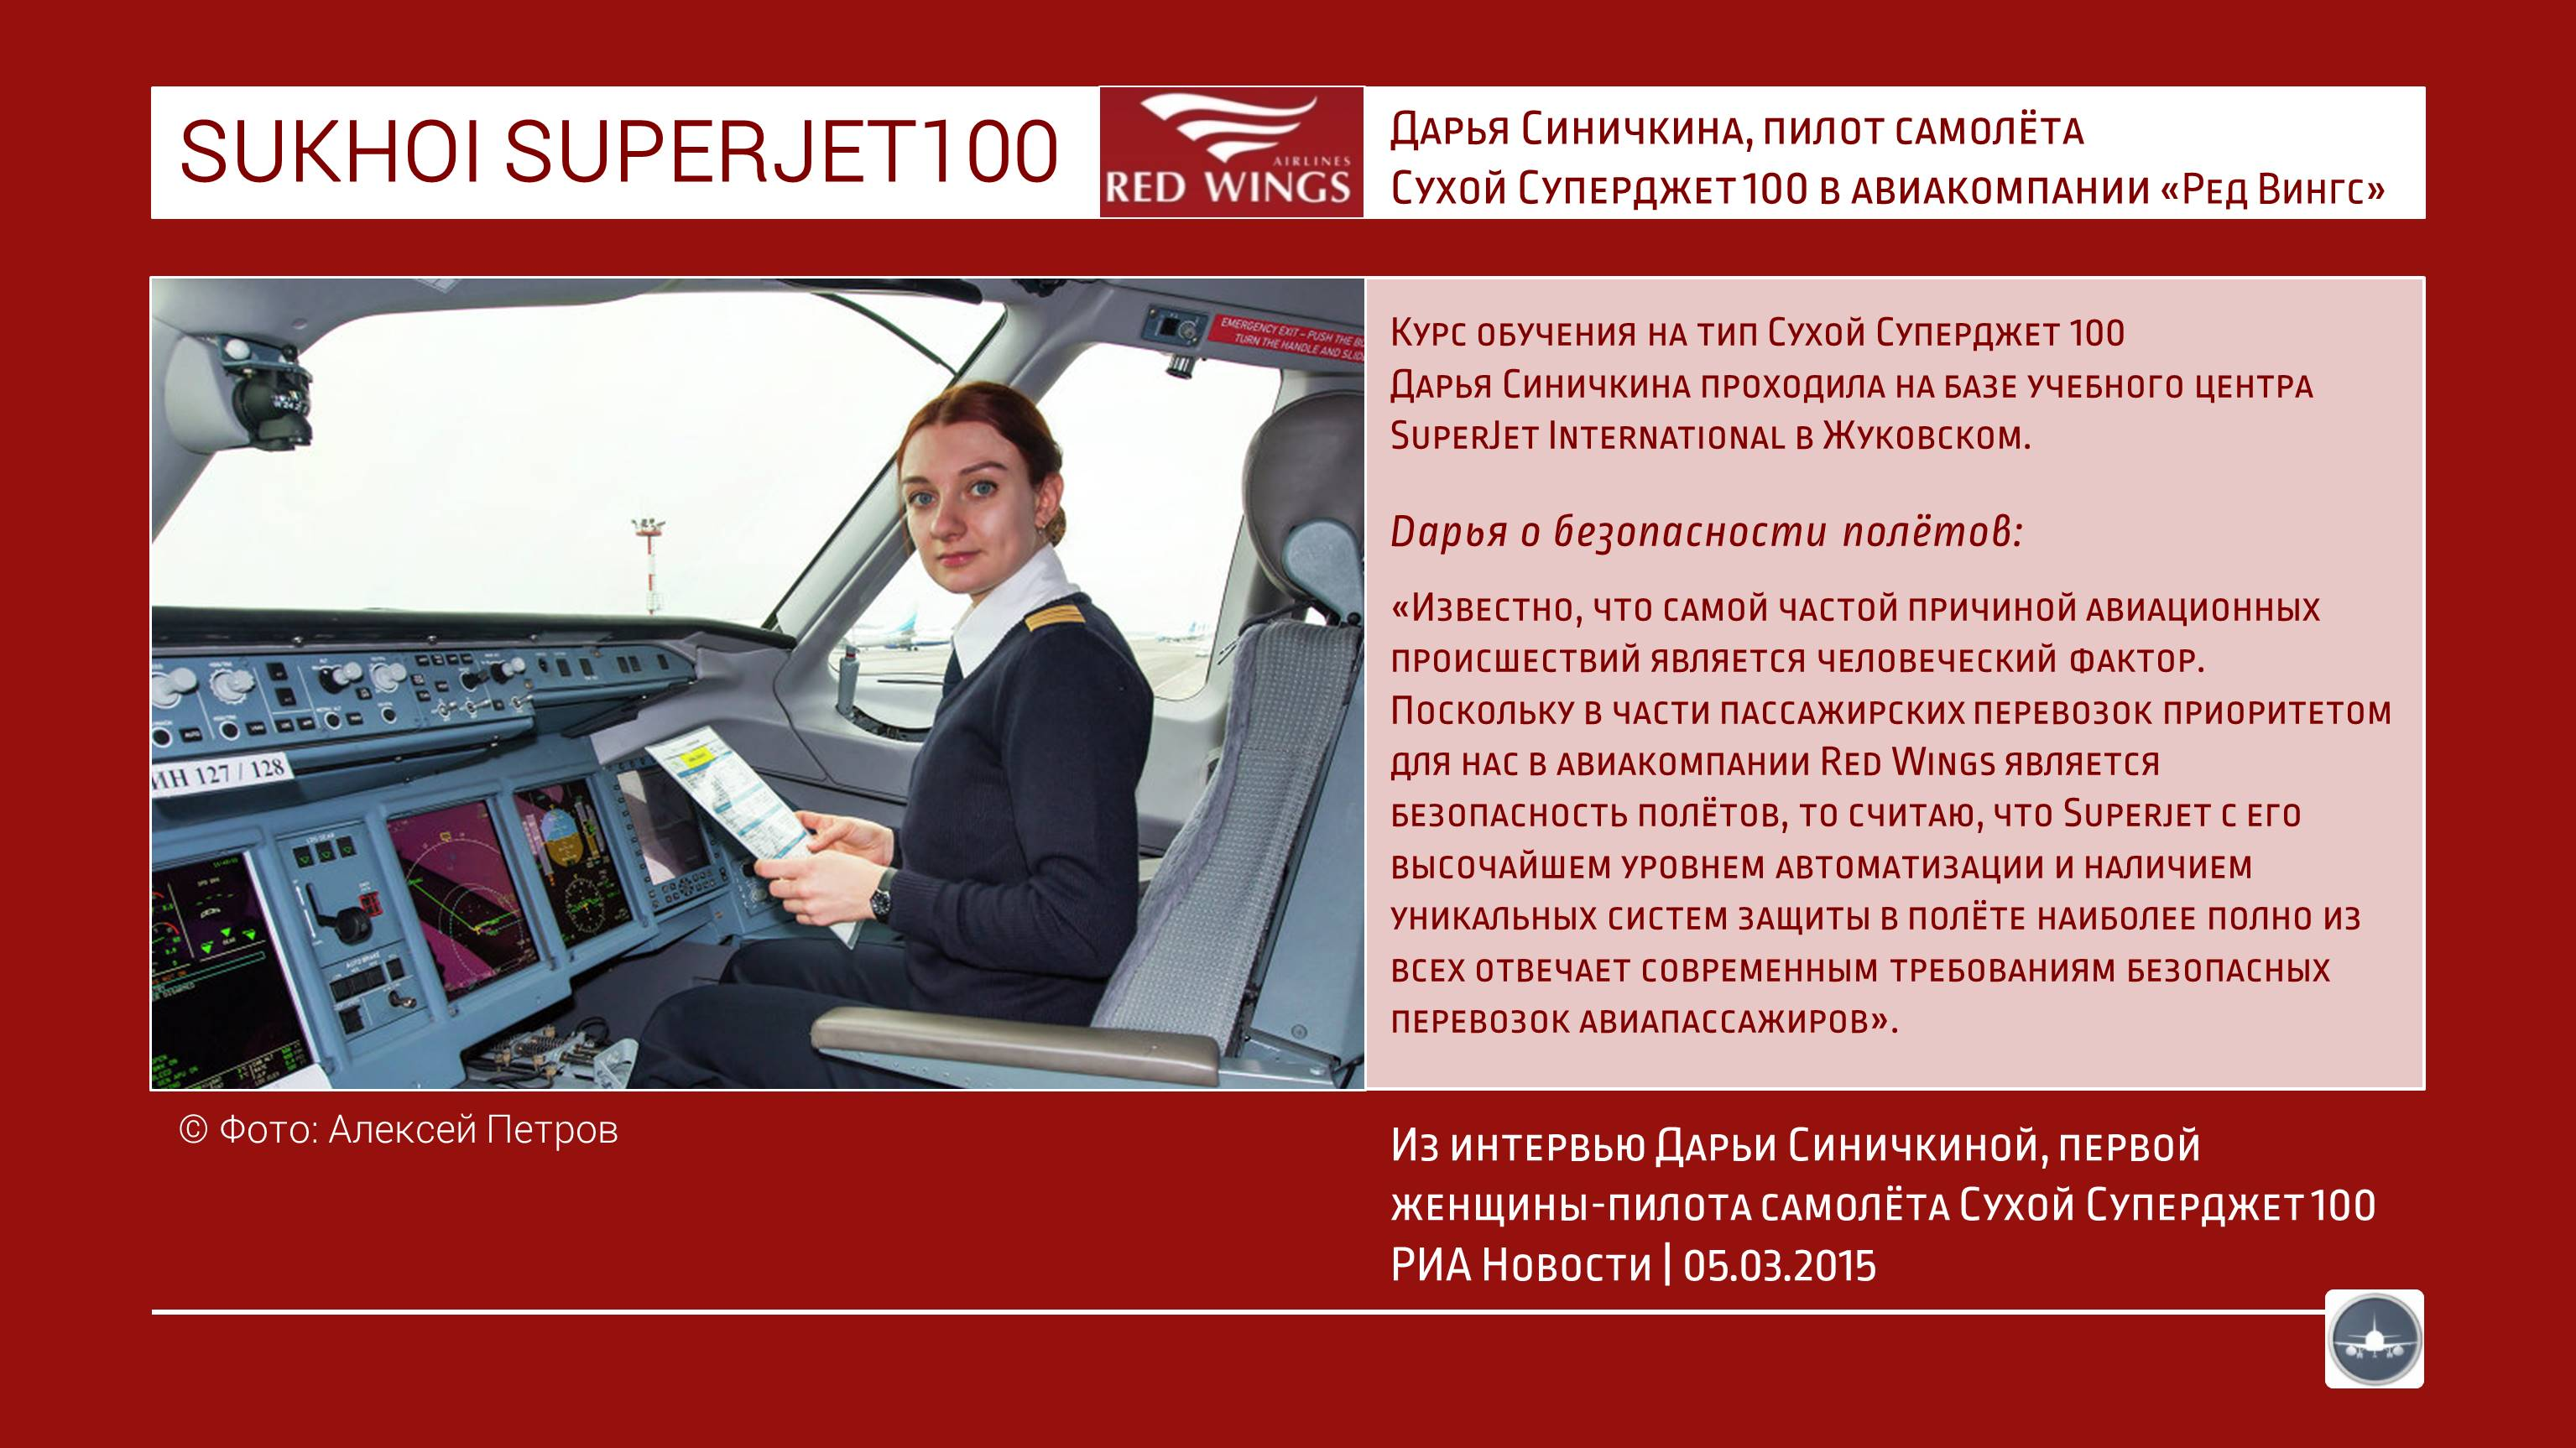 Sukhoi%20Superjet%20SSJ100%20RRJ95%20Red%20Wings%20Suchoi%20%283%29.JPG